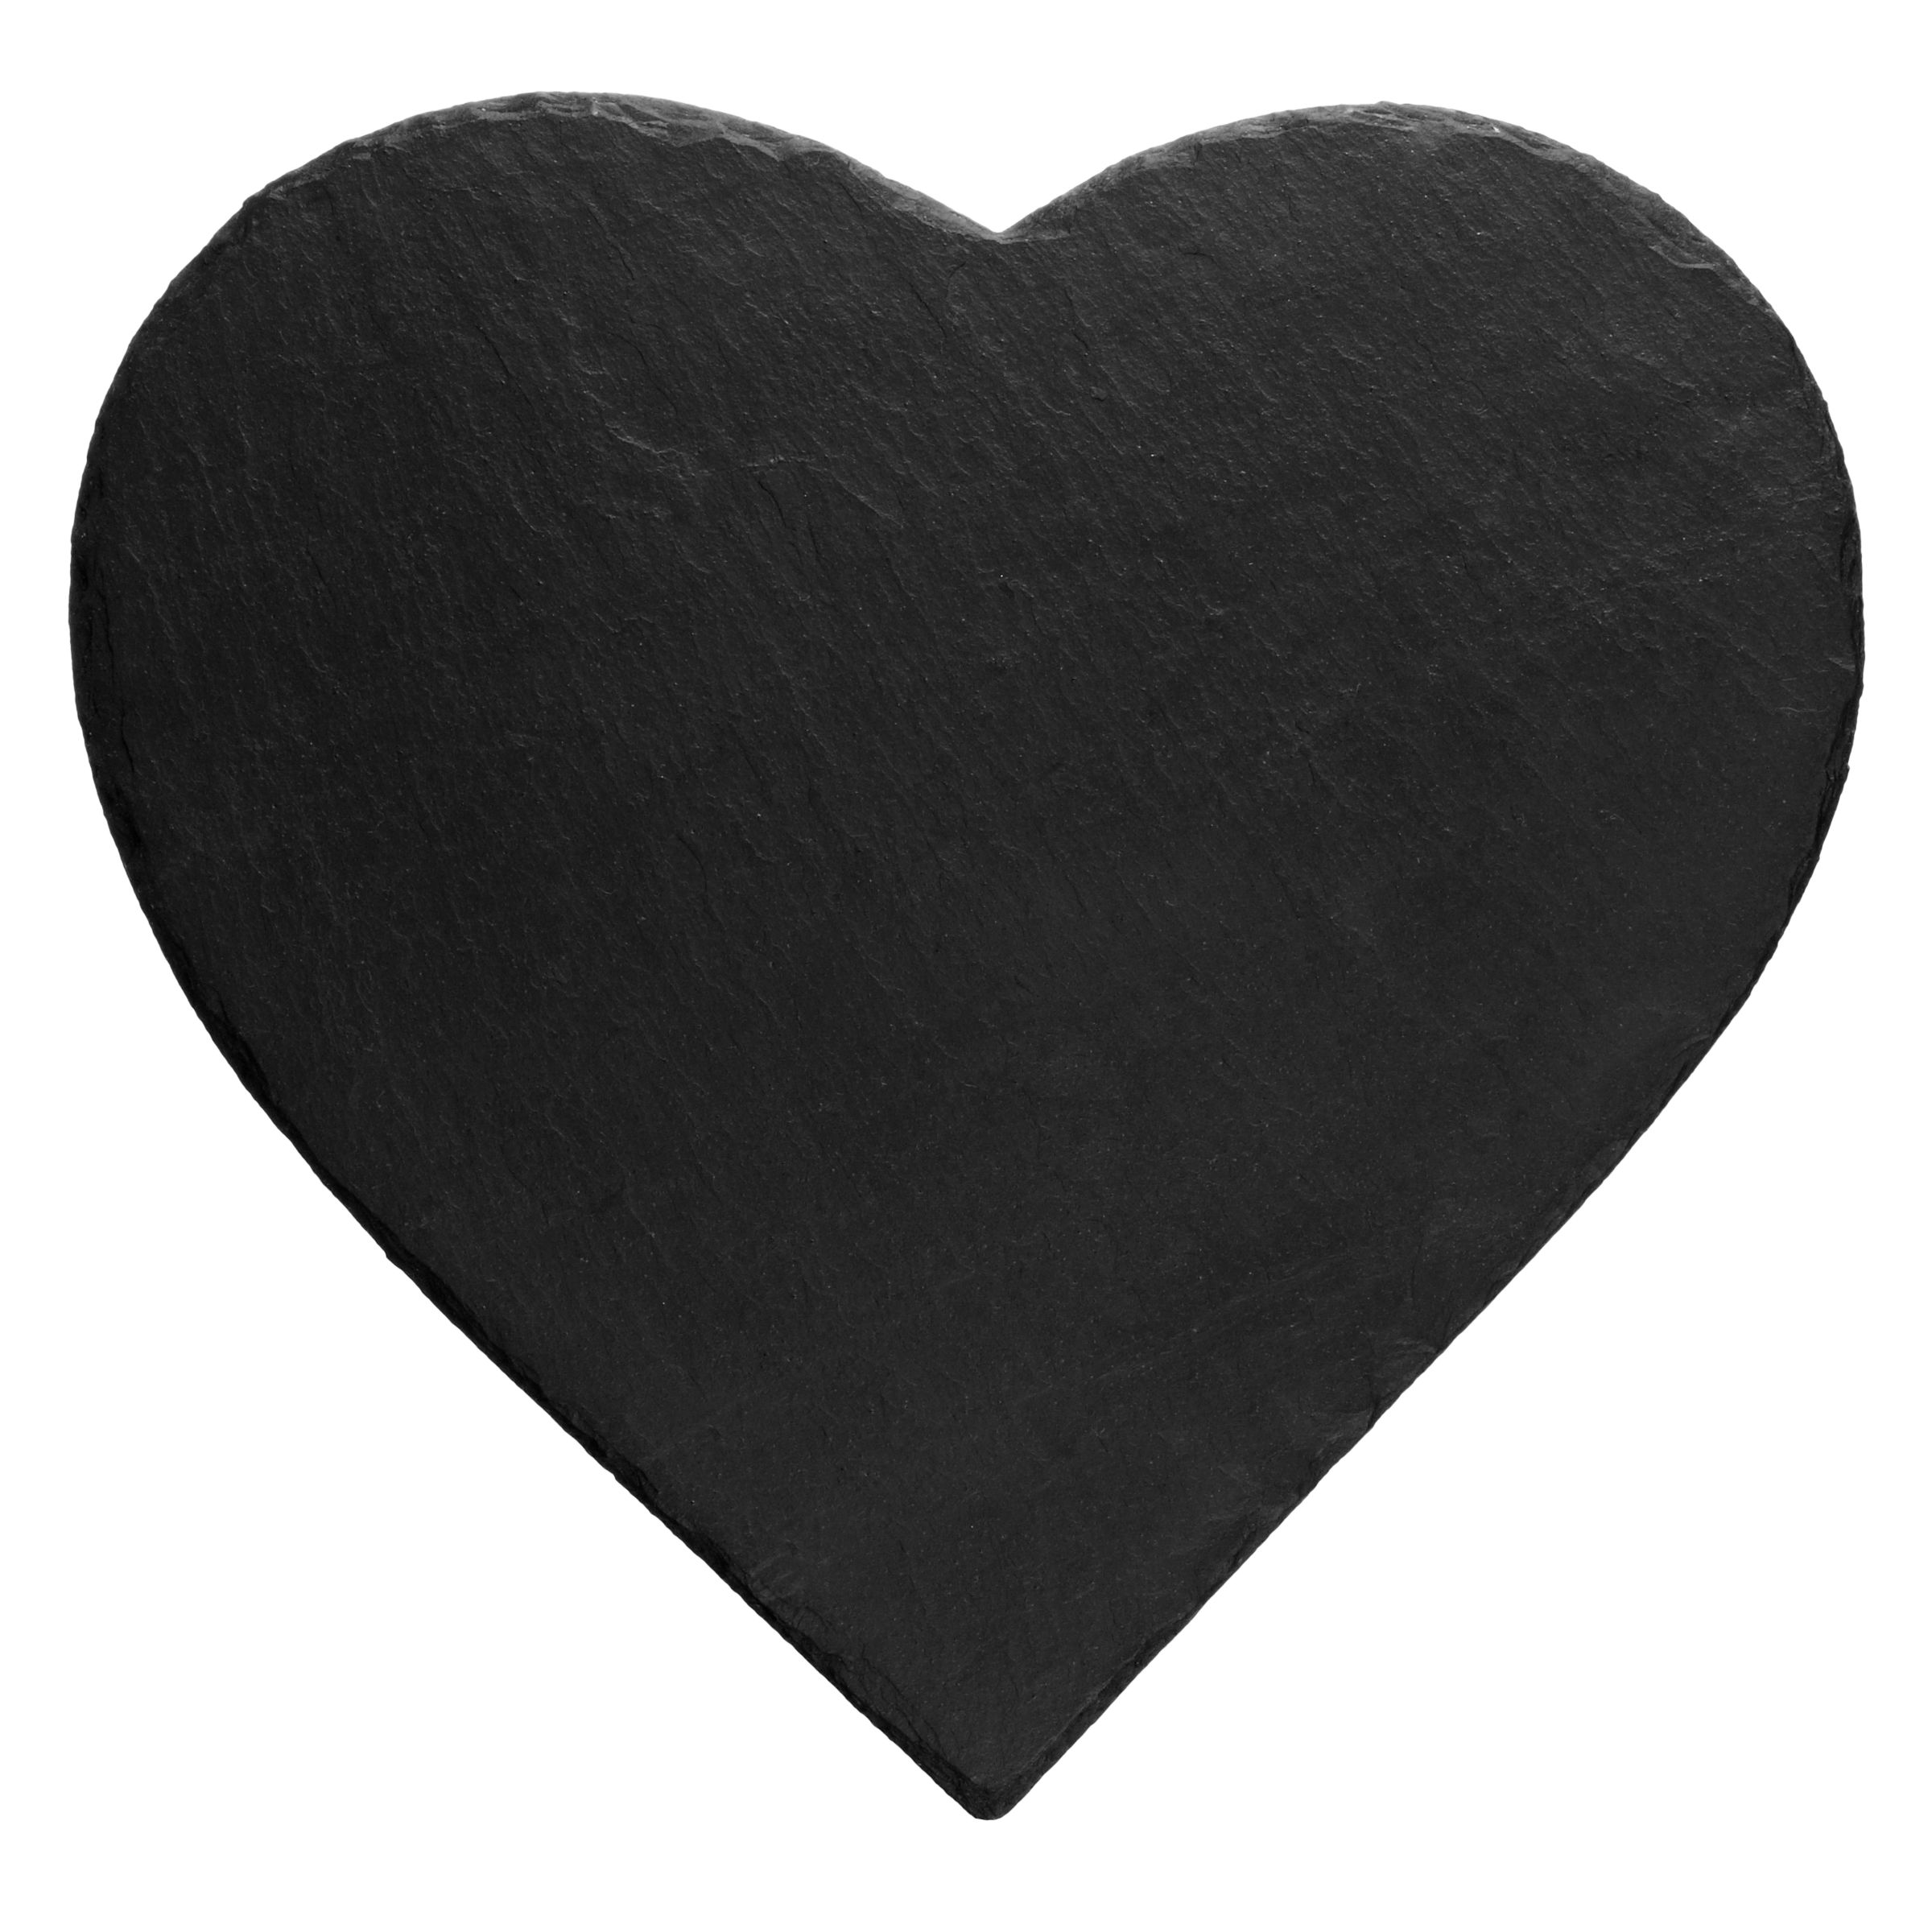 Just Slate Just Slate Heart Shaped Placemats, Set of 2, Dark Grey